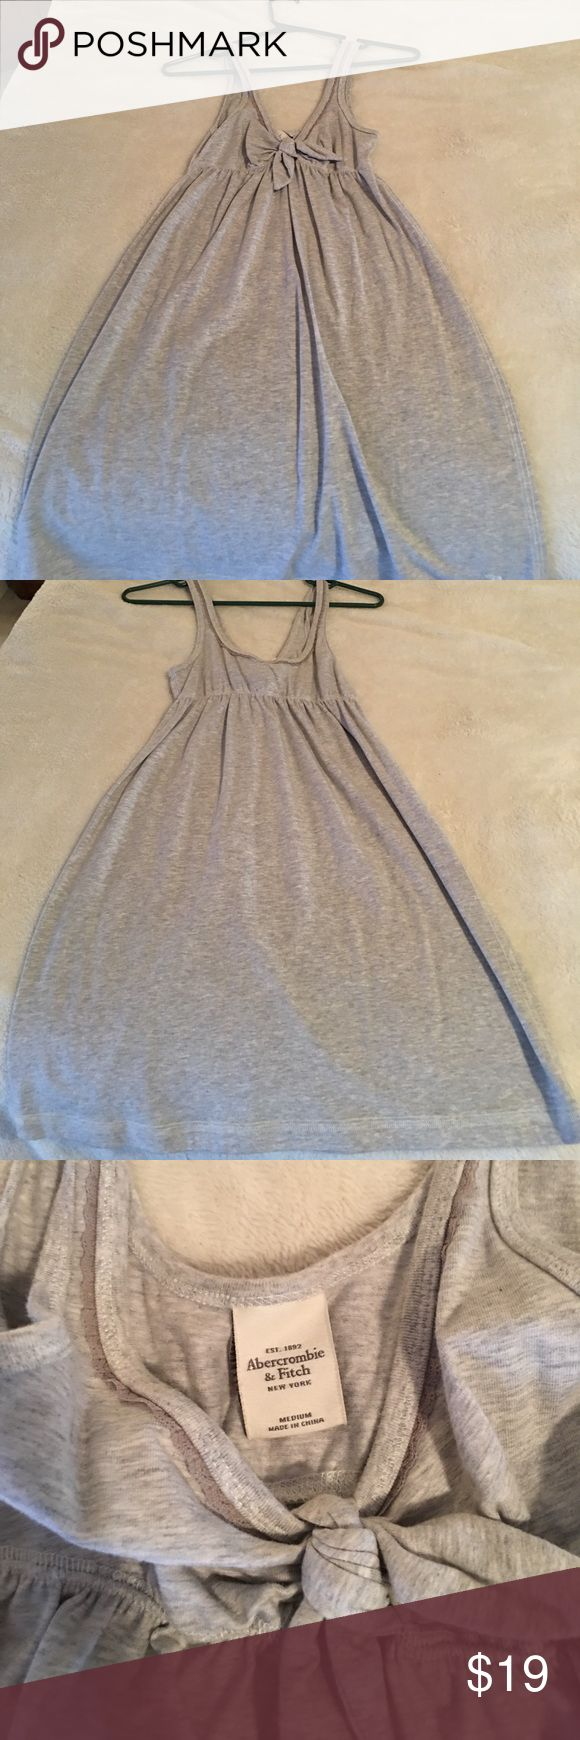 Abercrombie and fitch dress Abercrombie and fitch dress size M. Short Abercrombie & Fitch Dresses Mini